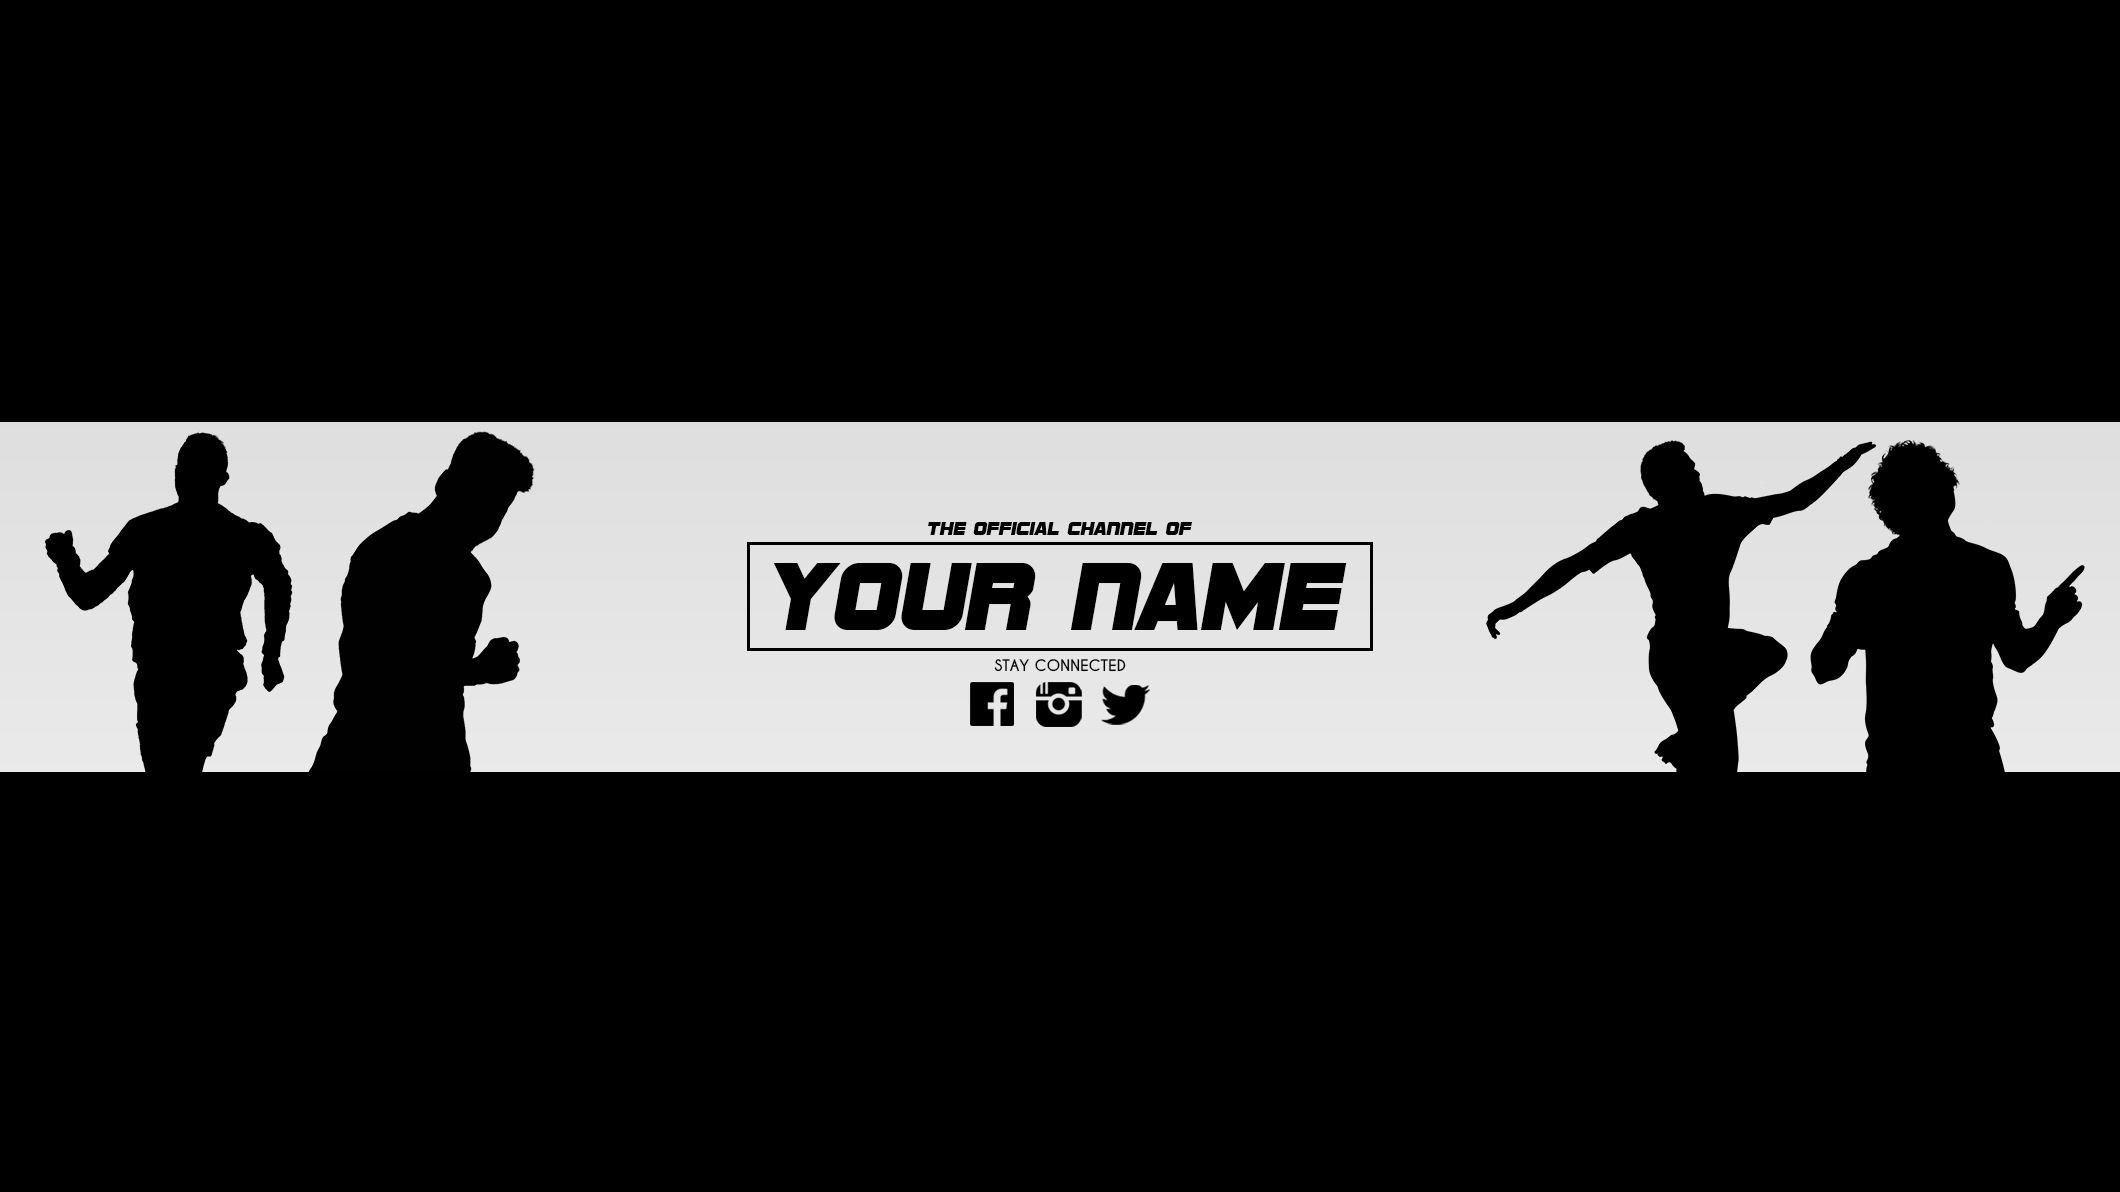 1b7693764 Free YouTube banner template for your channel just download the banner and  edit the name and